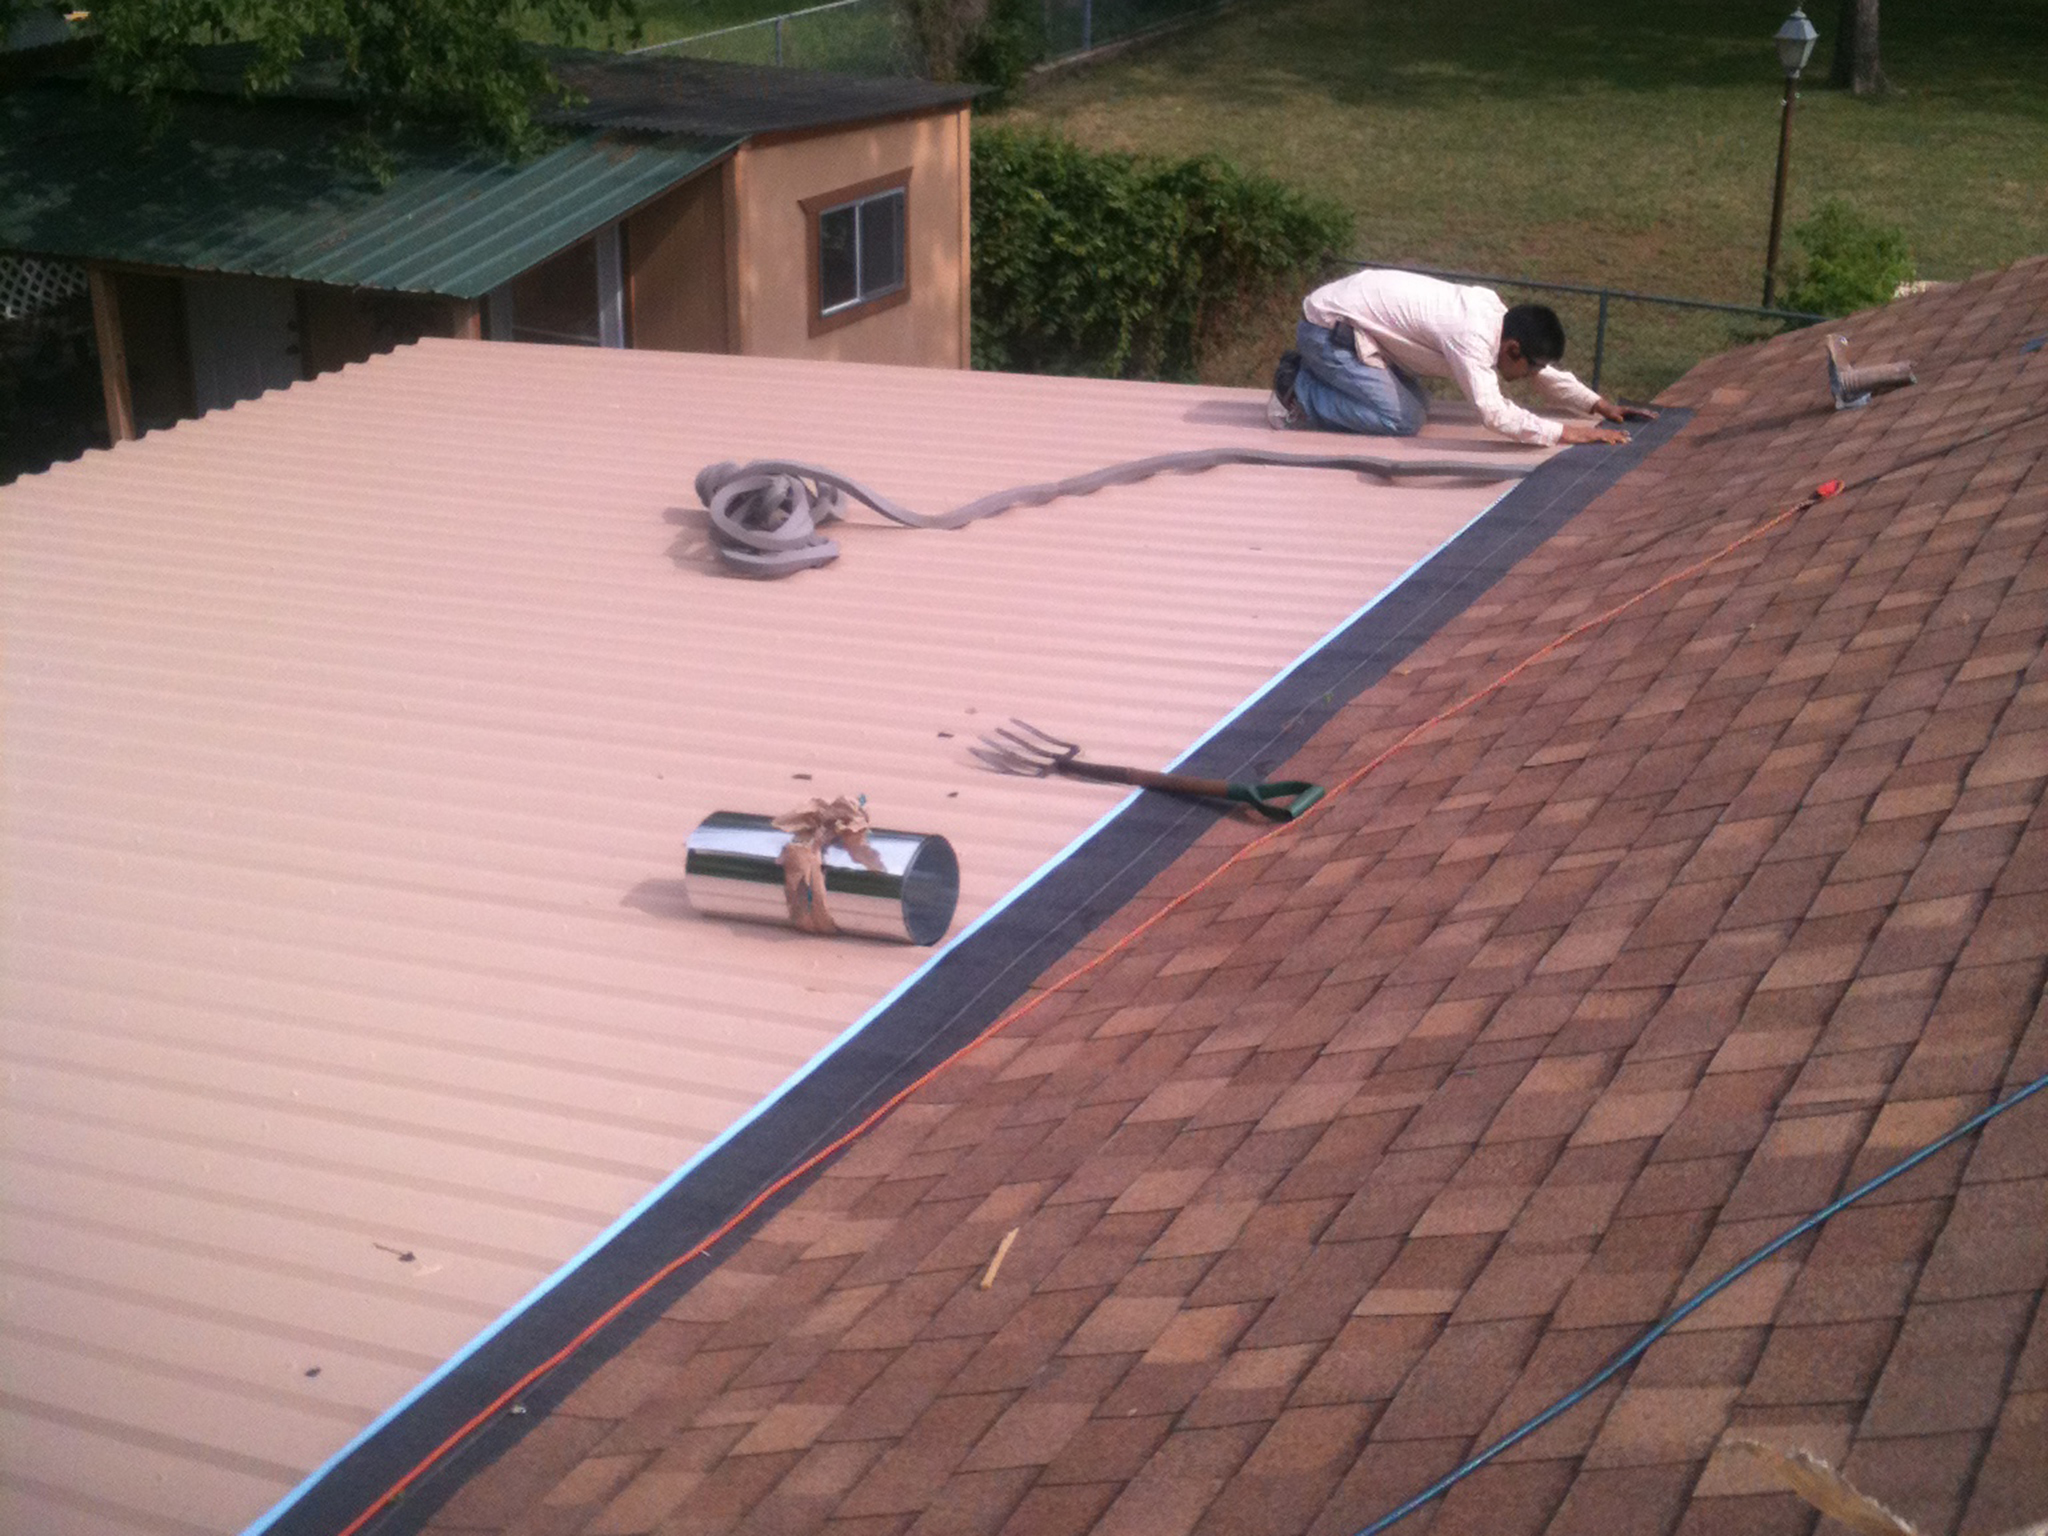 Roof Construction - Texas Built Roofing - Waco, Texas